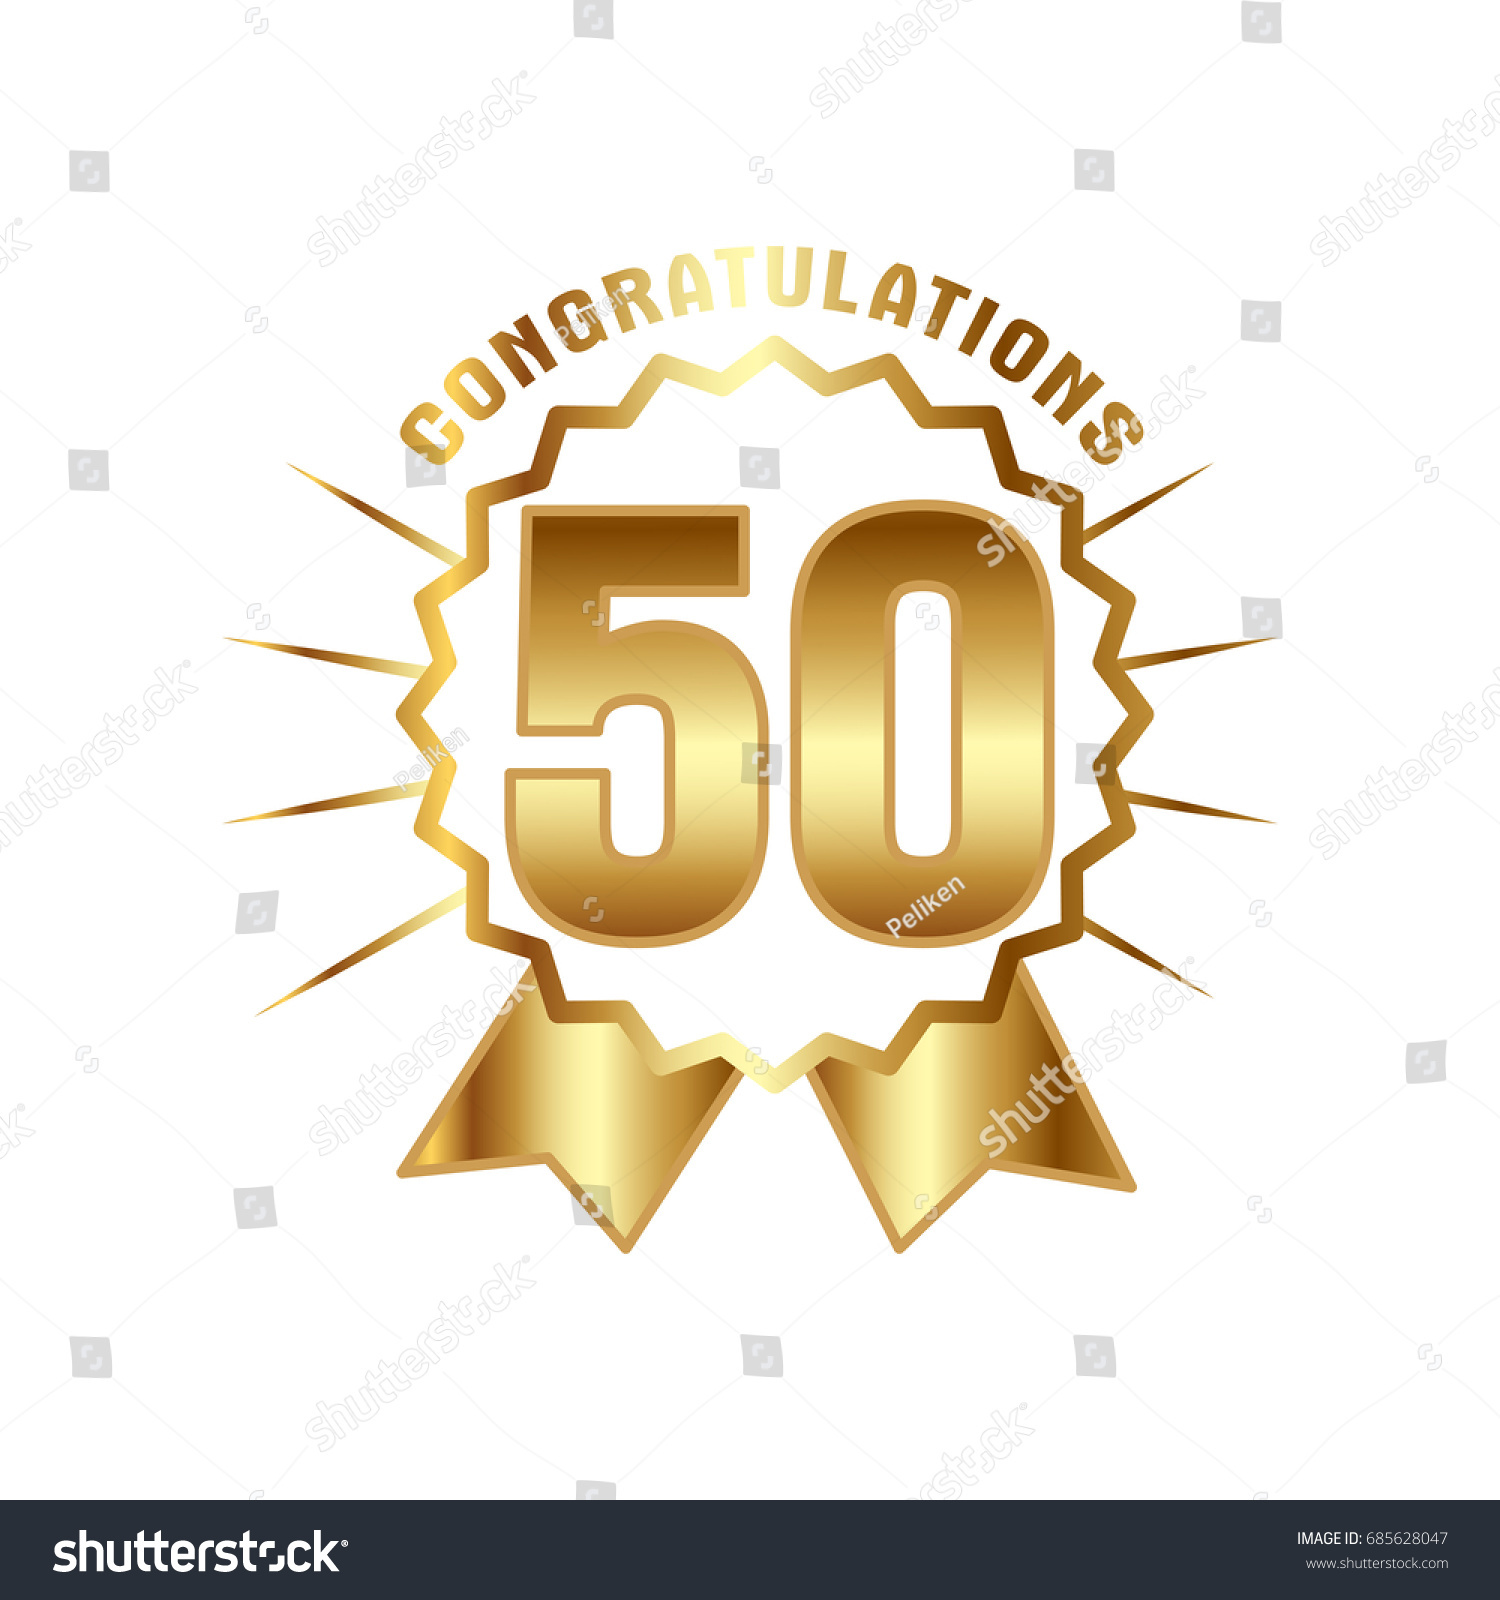 Anniversary golden fifty years number 50th stock vector 685628047 anniversary golden fifty years number 50th years festive logo and greeting with sunburst for invitation kristyandbryce Choice Image